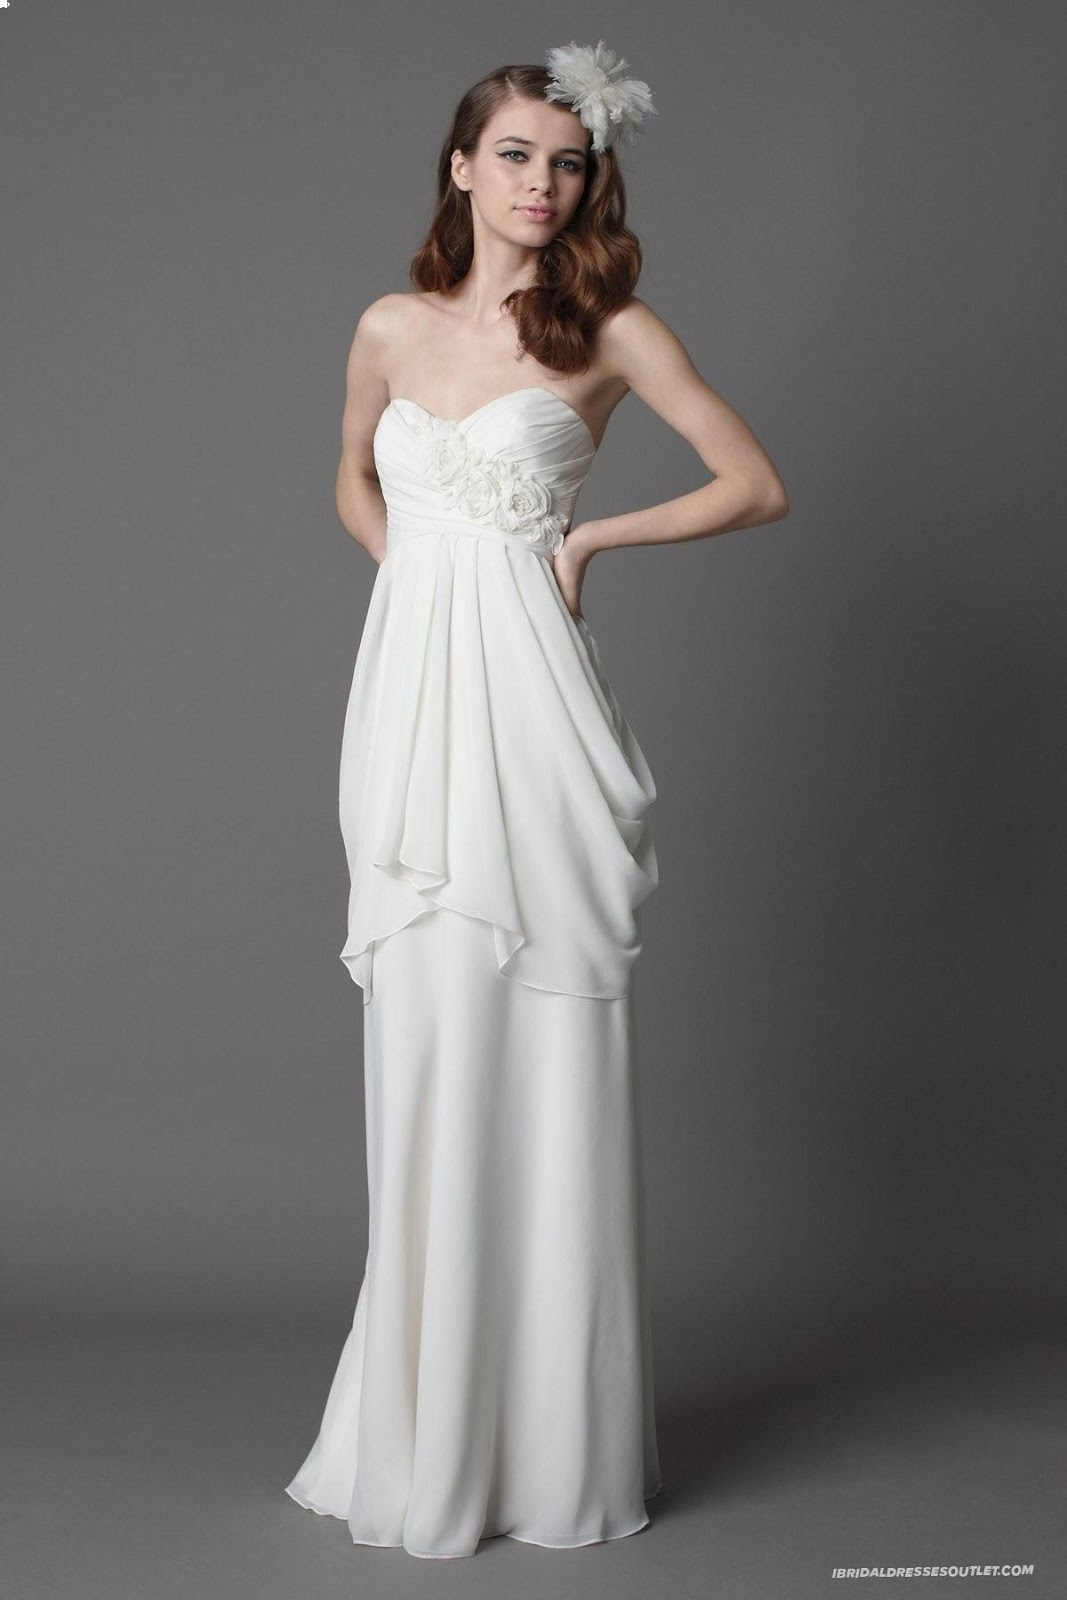 Wedding Dresses For Casual Wedding : Choose your fashion style casual wedding dresses for